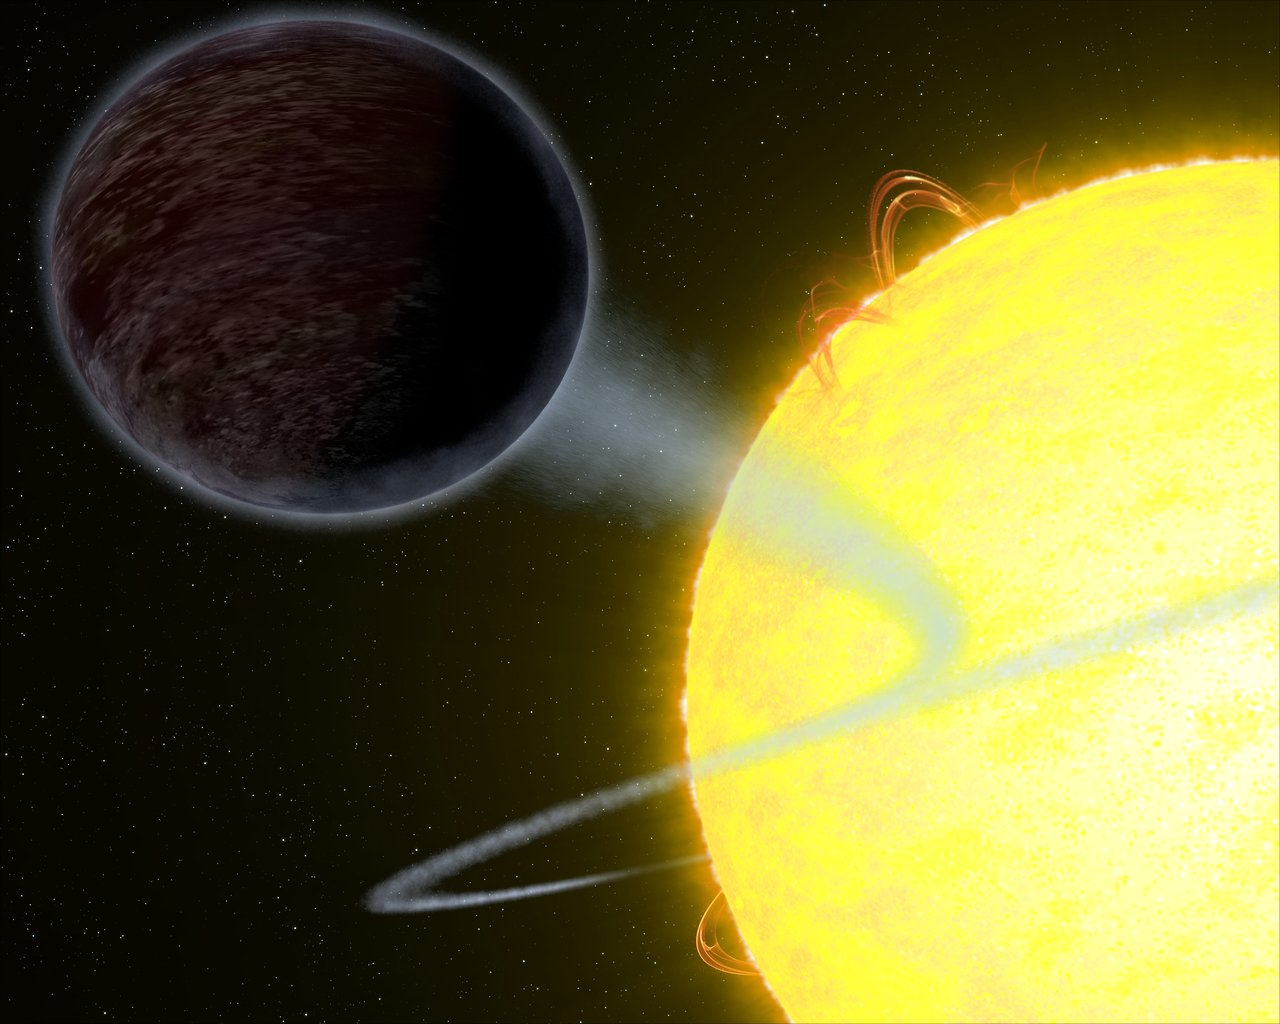 Science Release: Hubble observes pitch black planet